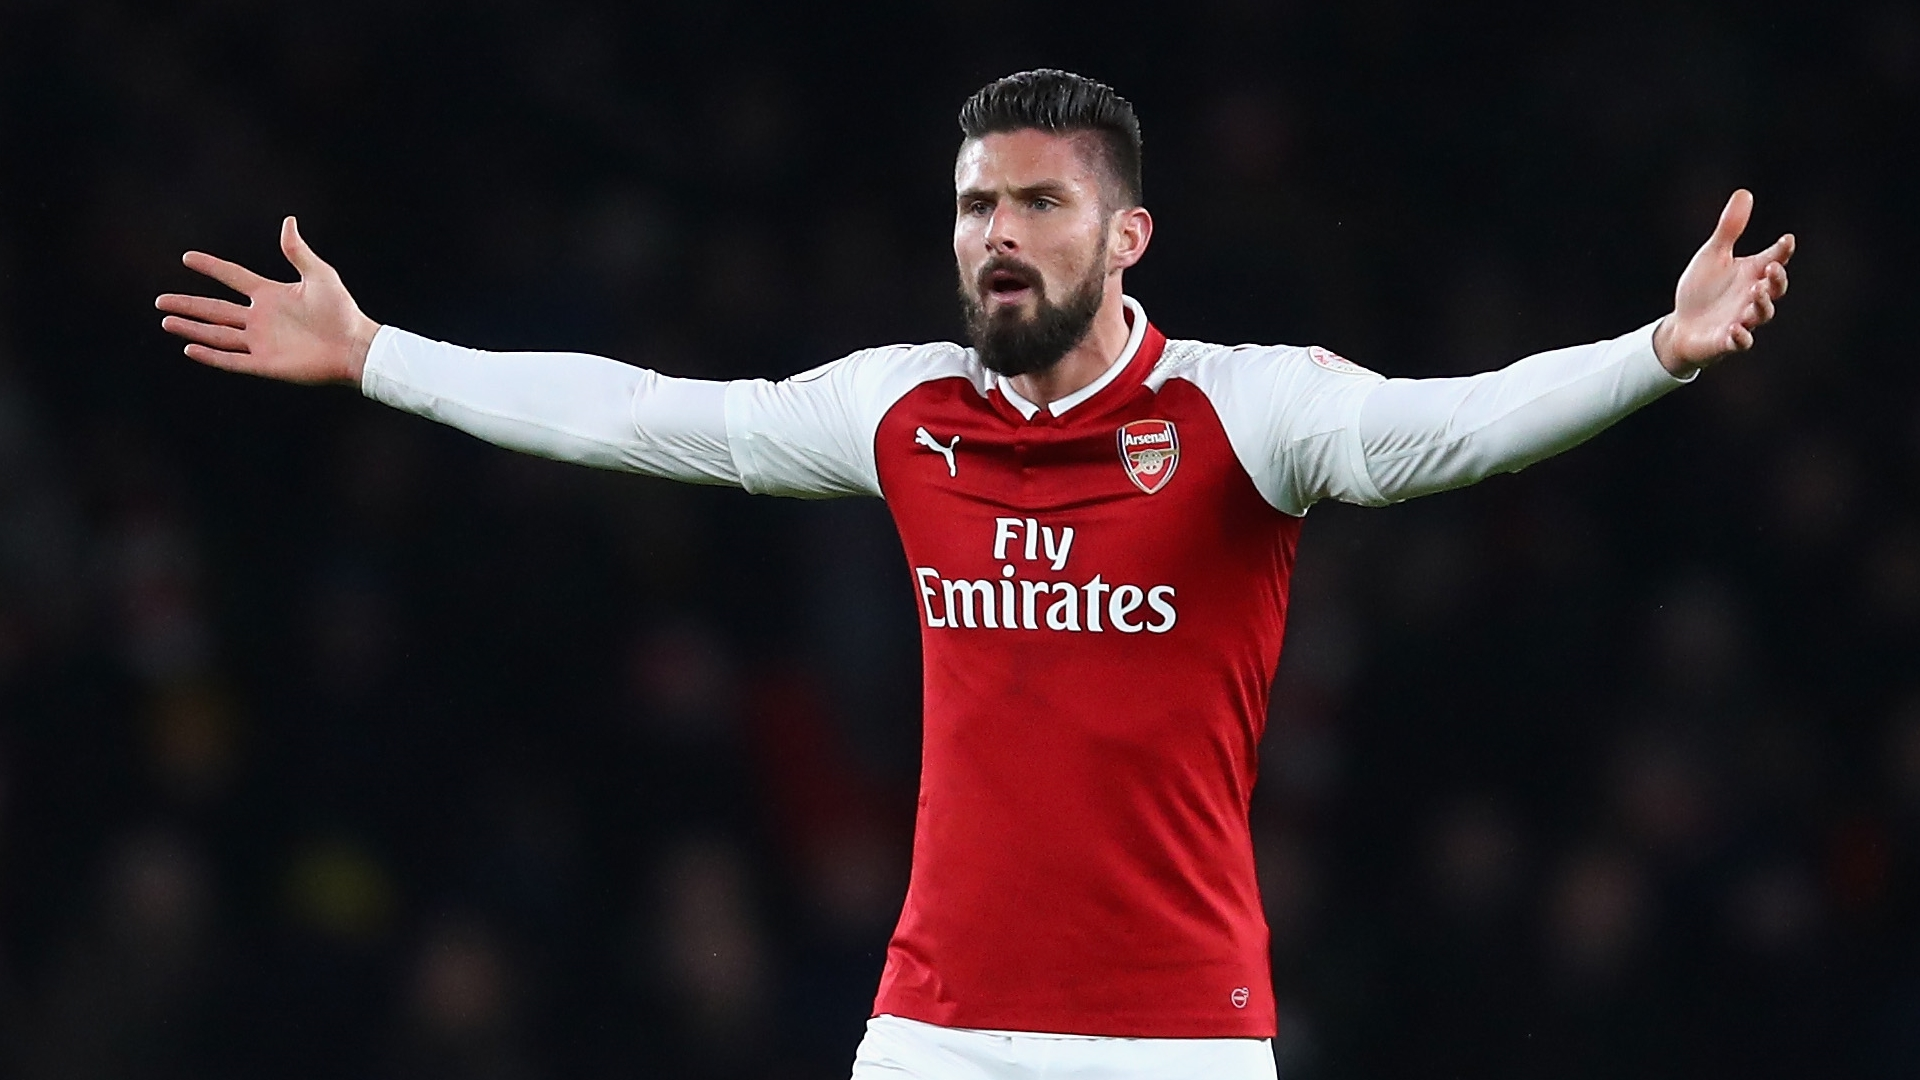 olivier giroud arsenal 1ooxa7fns0zf51vi4m22giqsa3 - ROUND-UP of 30/1/2018 TRANSFER NEWS, DONE DEALS AND RUMOURS